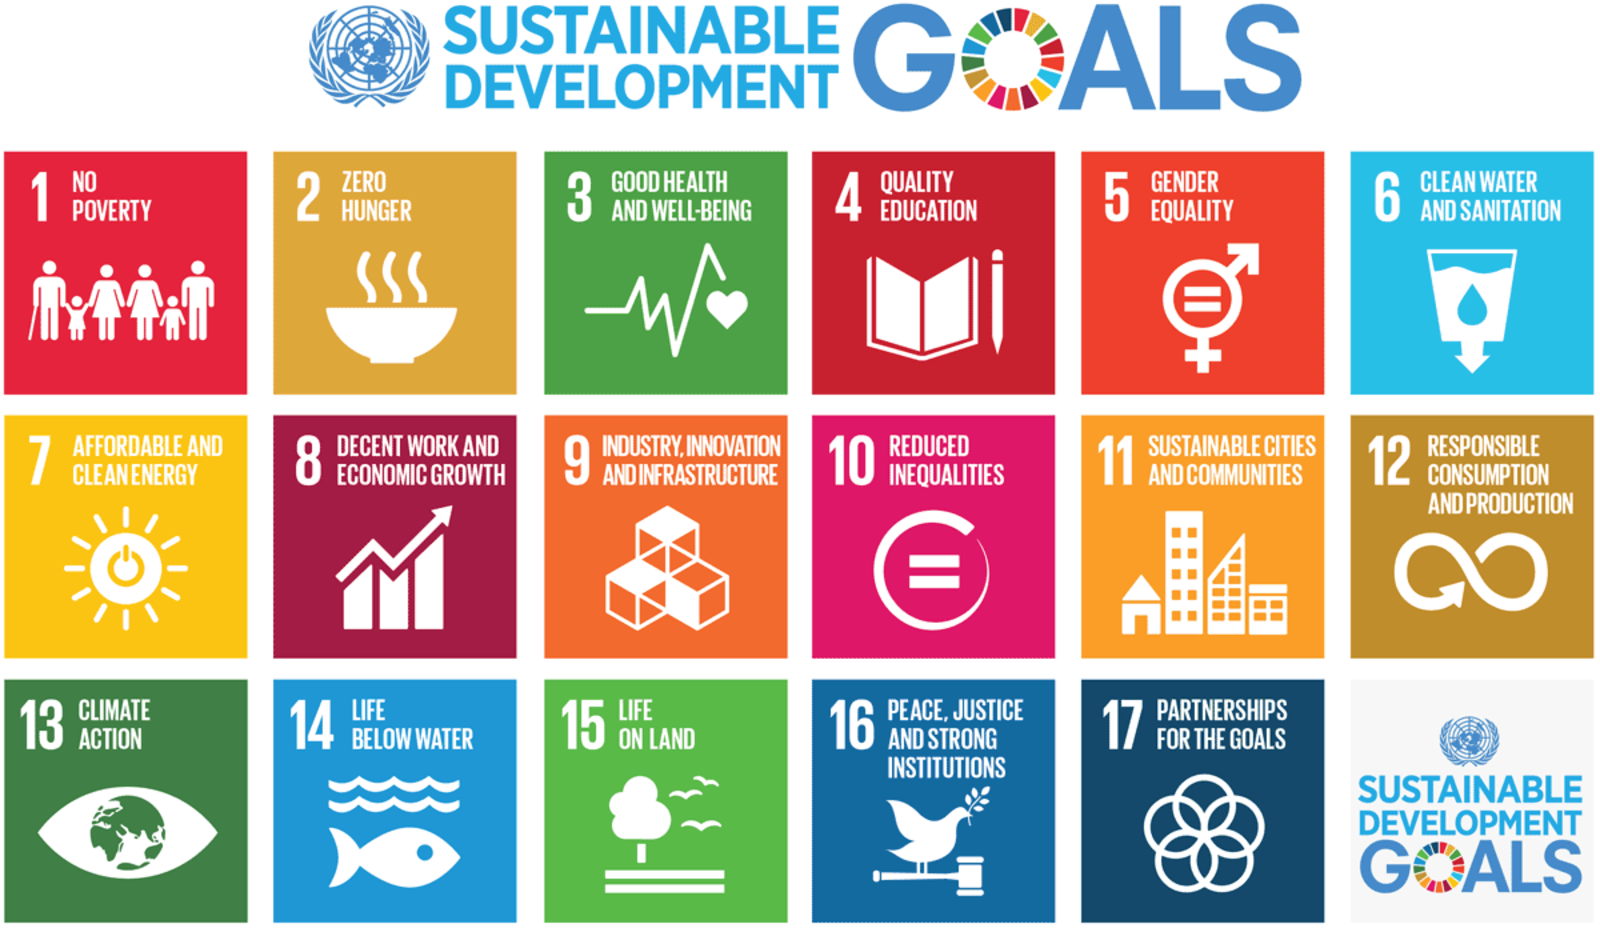 UN SUSTAINABLE DEVELOPMENT GOALS: A ROADMAP TO RECOVERY